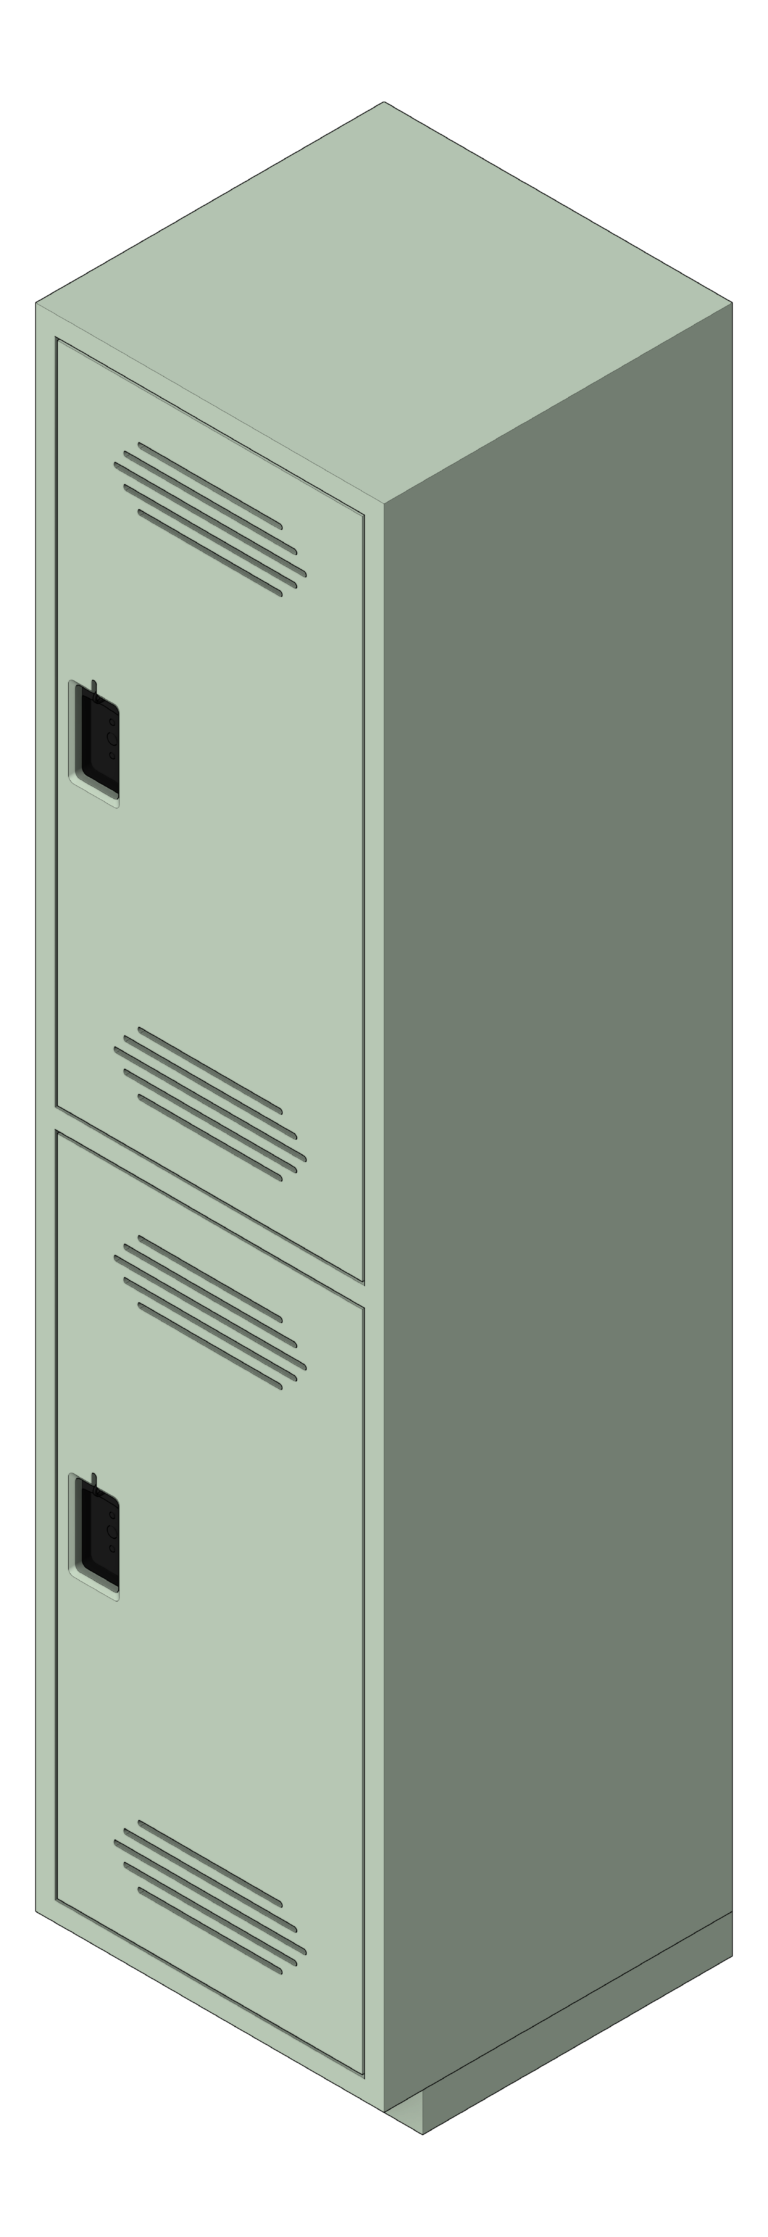 Locker_Plastic_ASI_Traditional_DoubleTier_3D Shaded